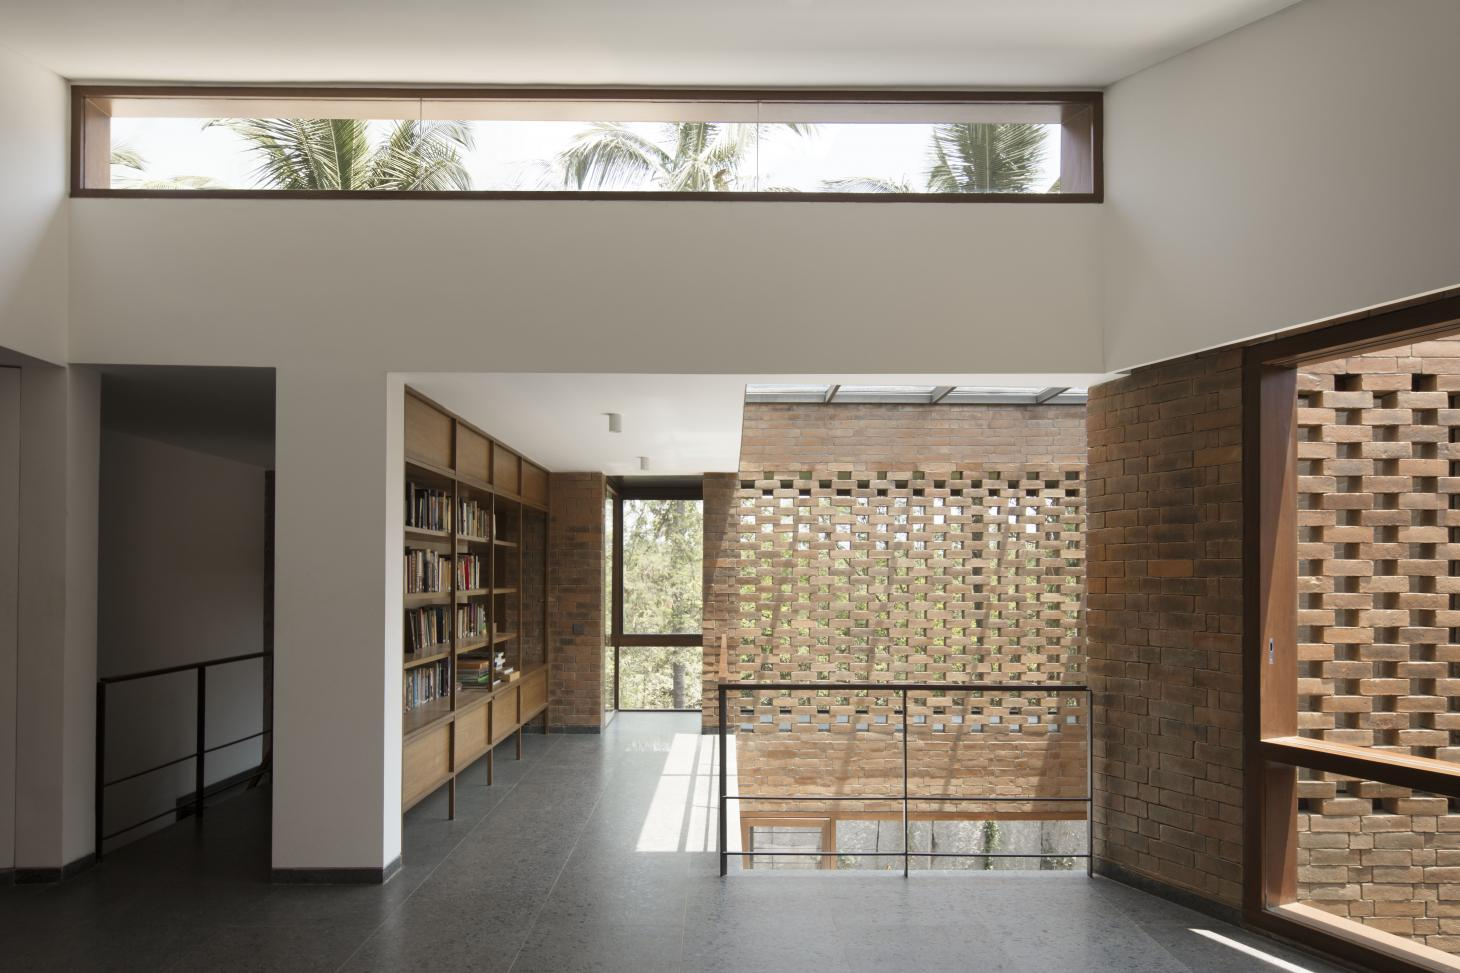 Brick House features open interiors that allow views out